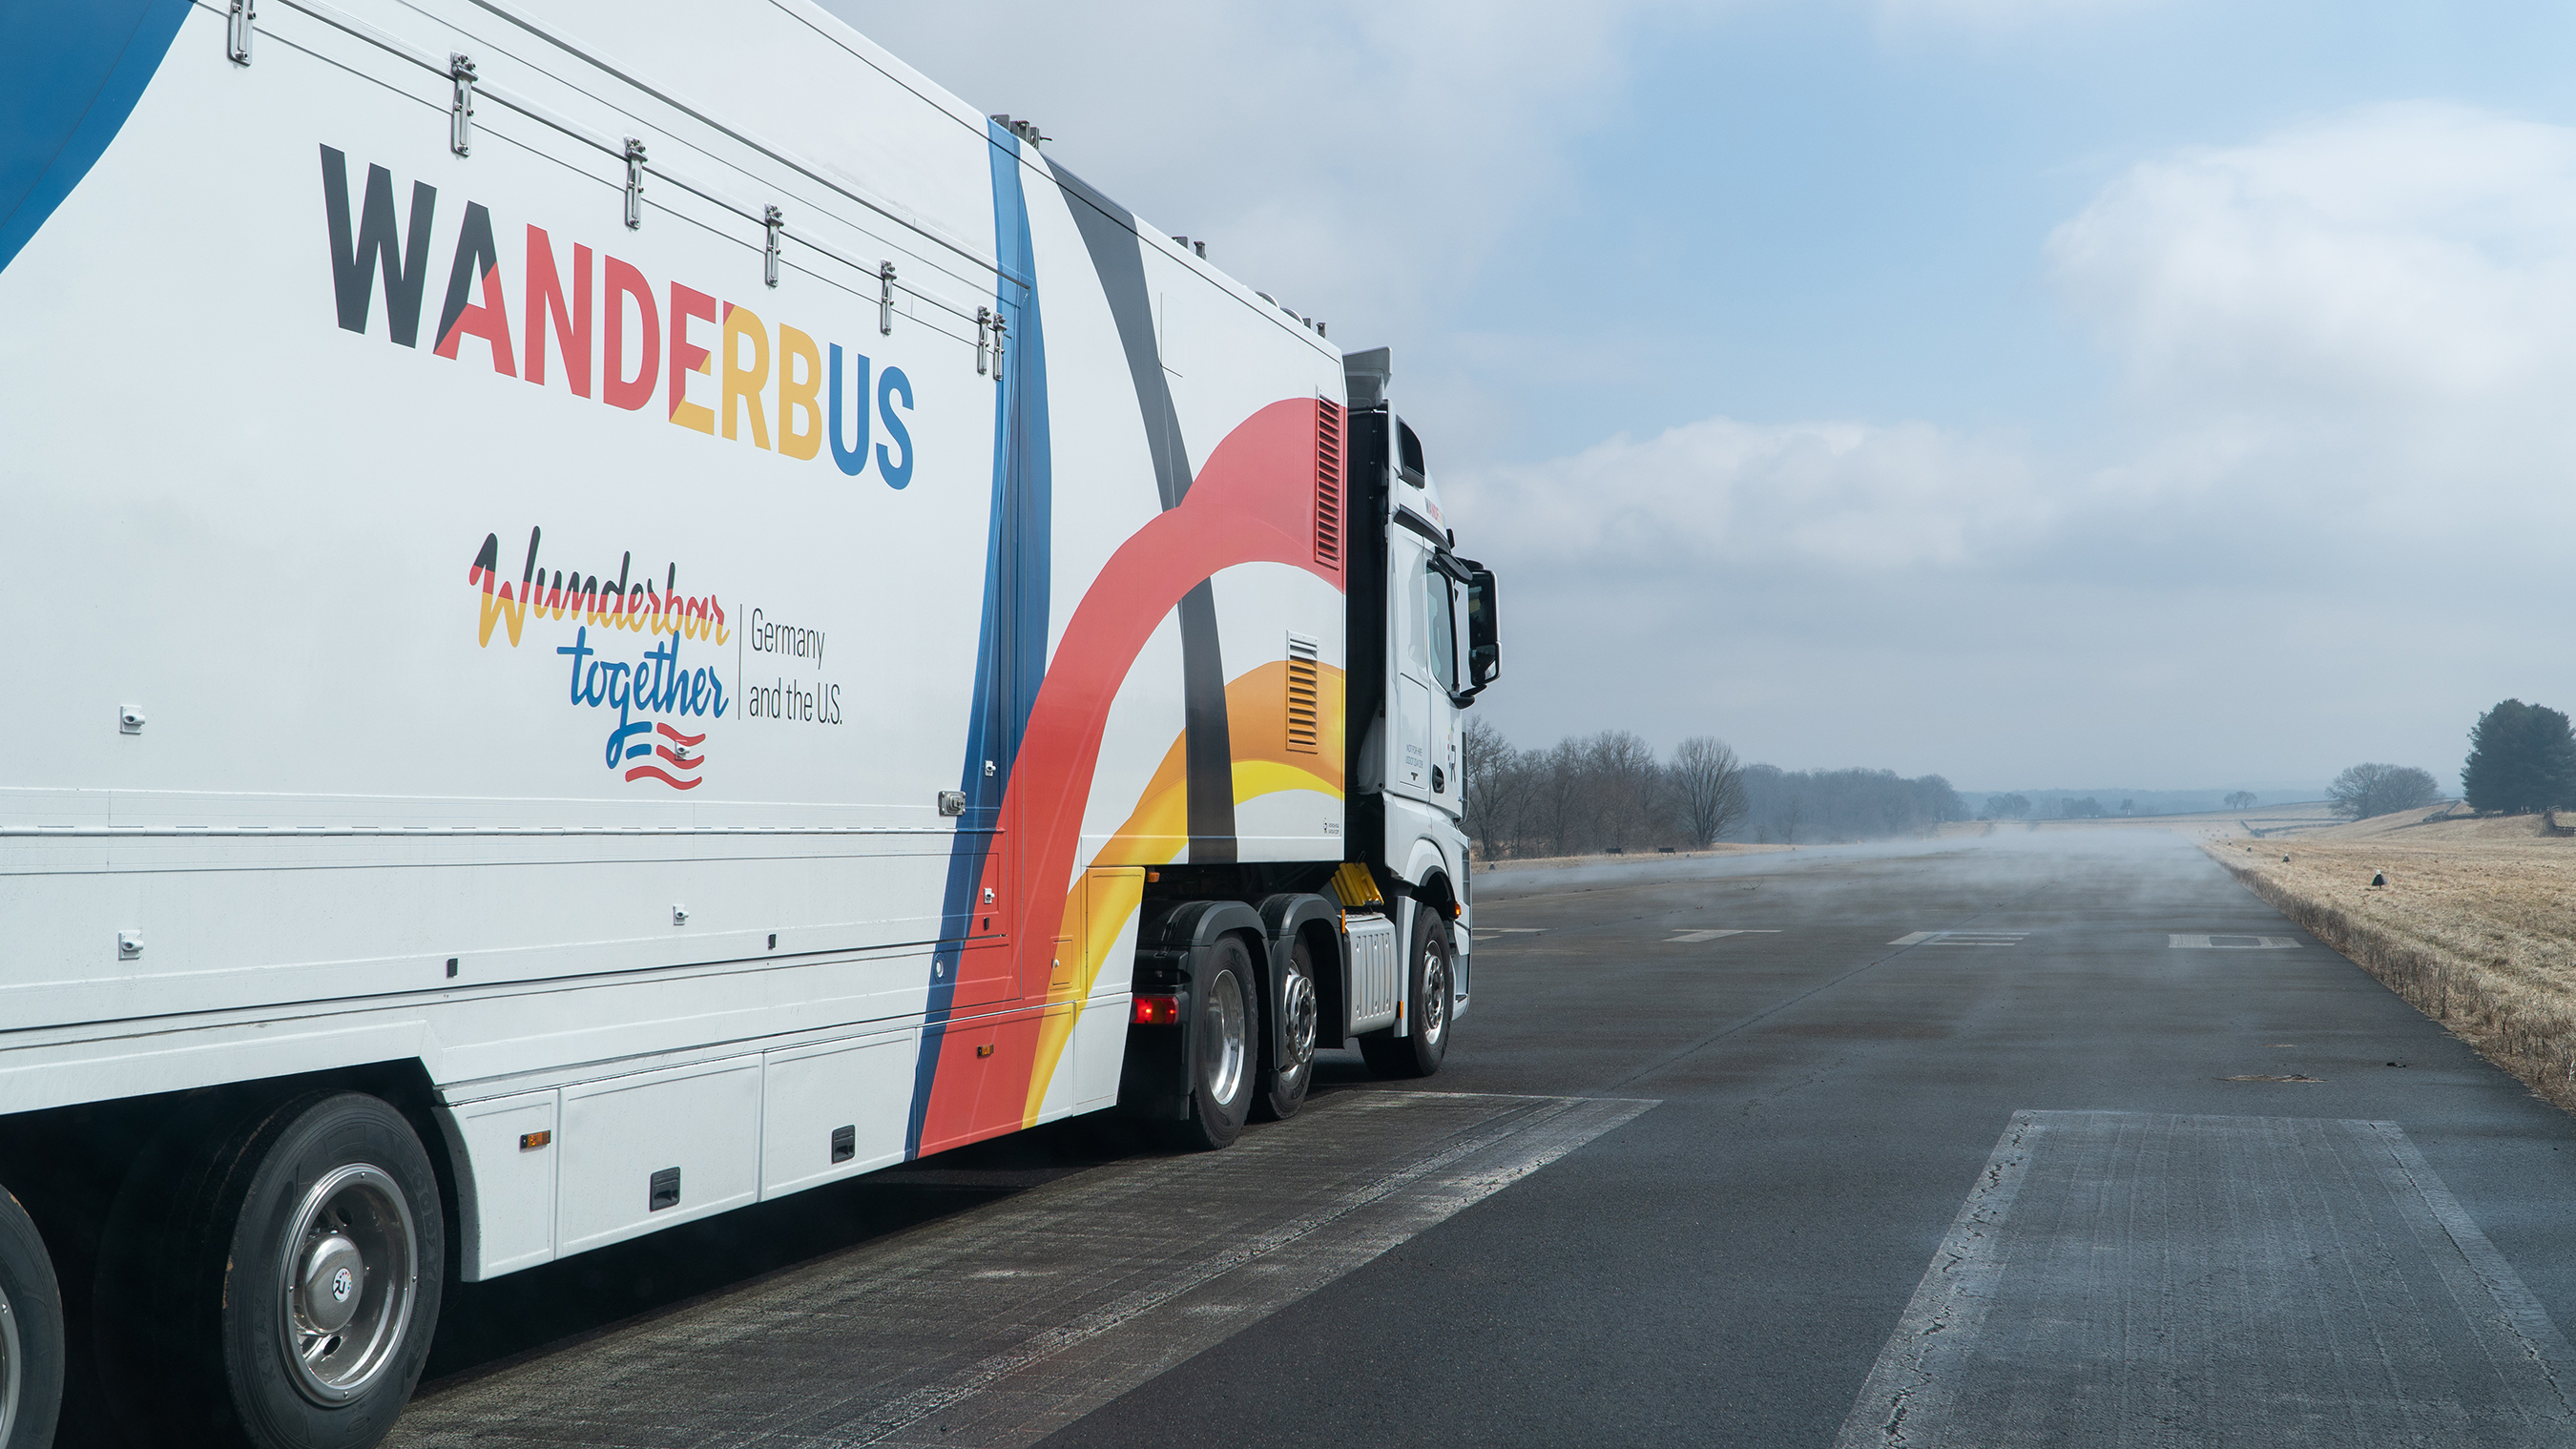 WanderbUS embarks on cross-country tour